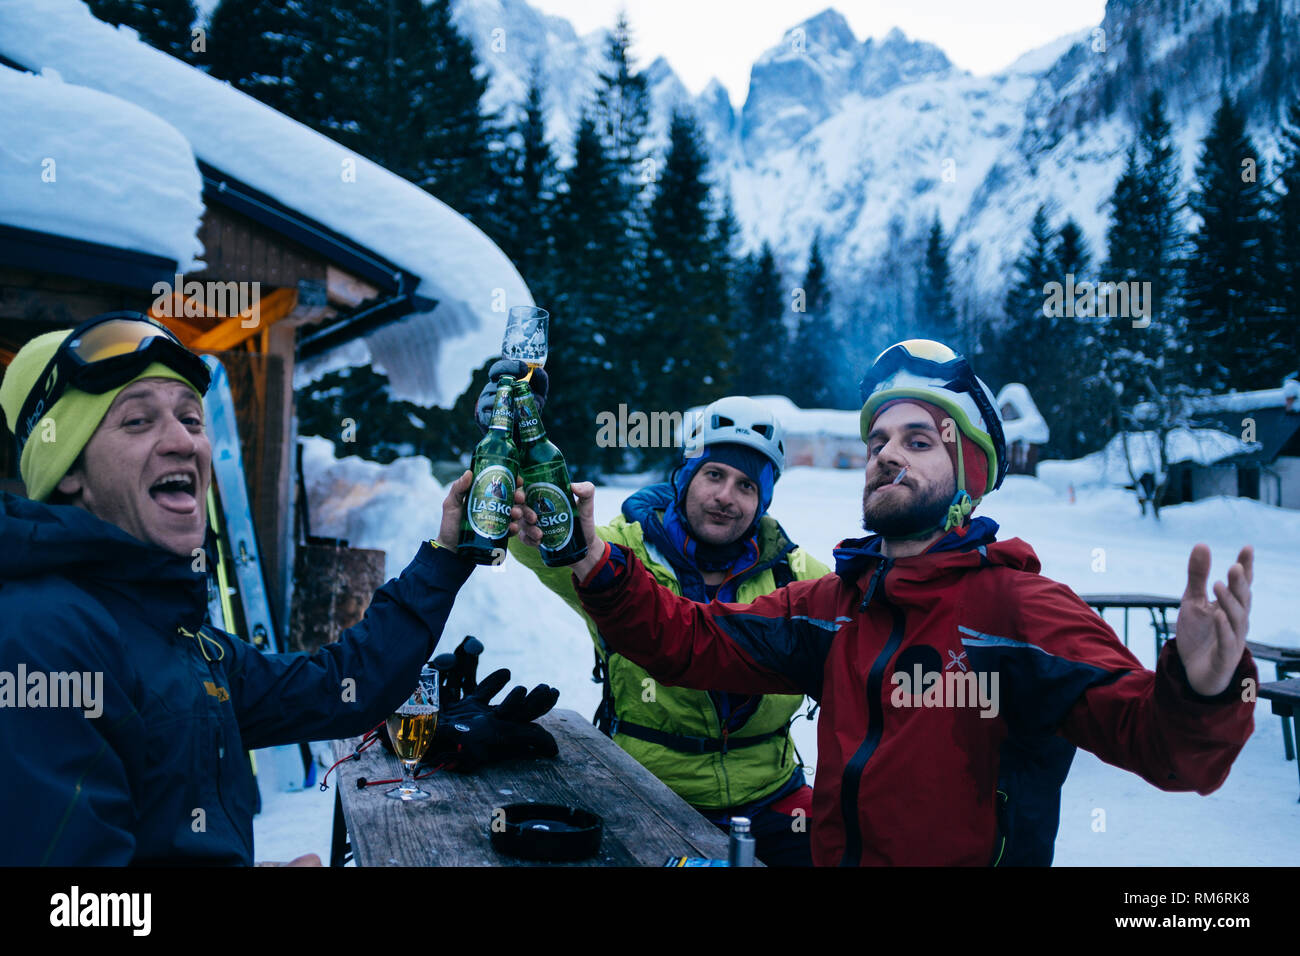 Friends drinking beer after great day of skiing - Stock Image